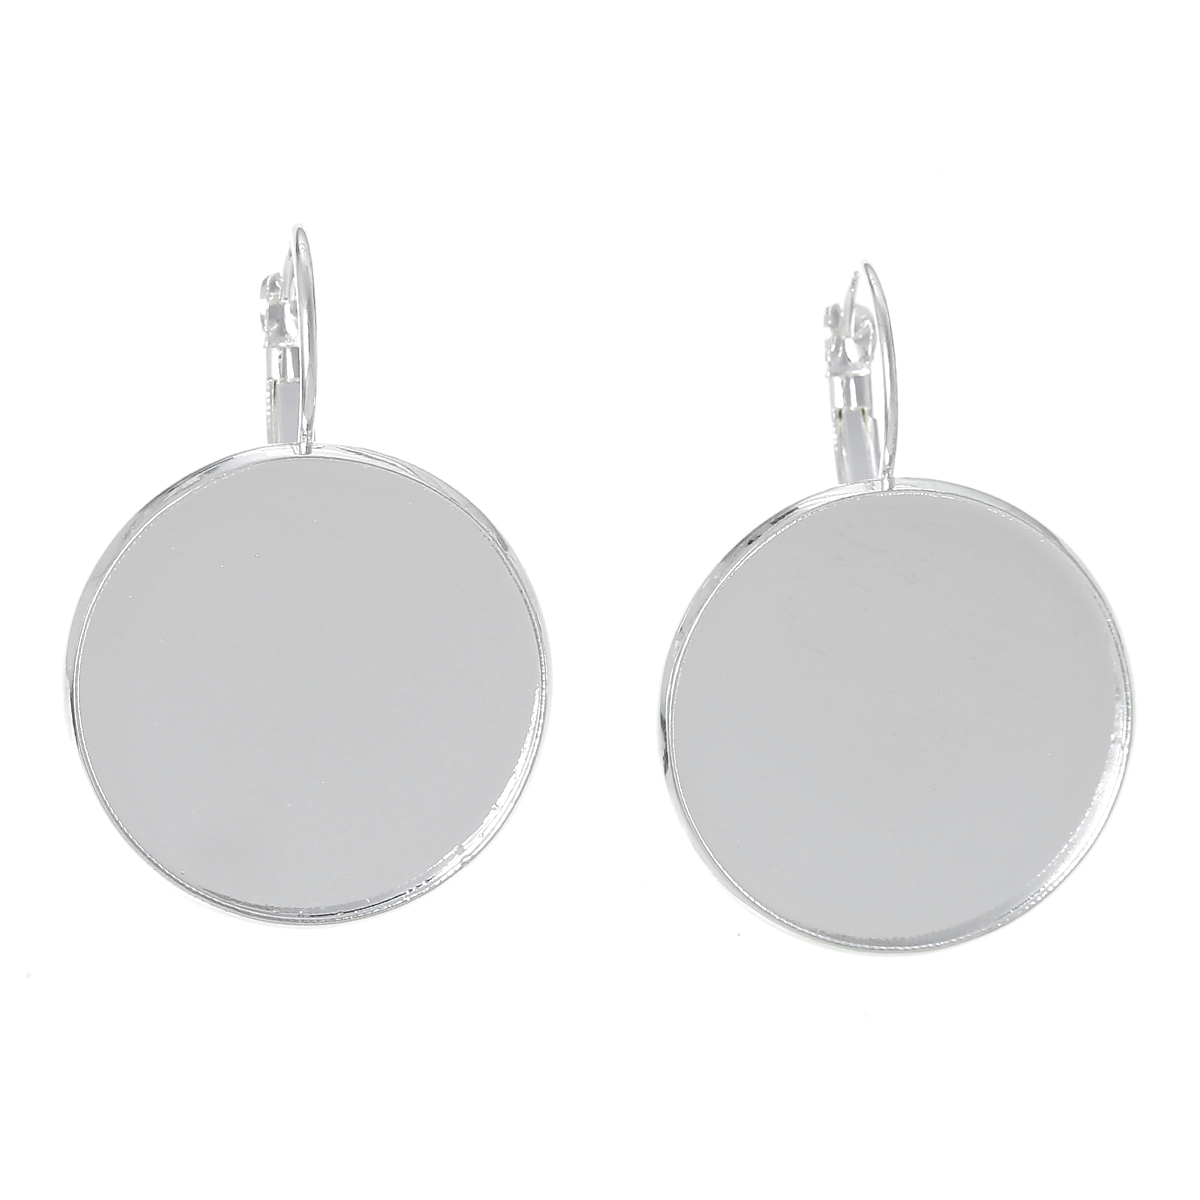 Copper Earring Clip Findings Round Silver Plated Cabochon Settings(Fits 20mm)34mm(1 3/8)x 22mm(7/8),10 PCs 2015 new